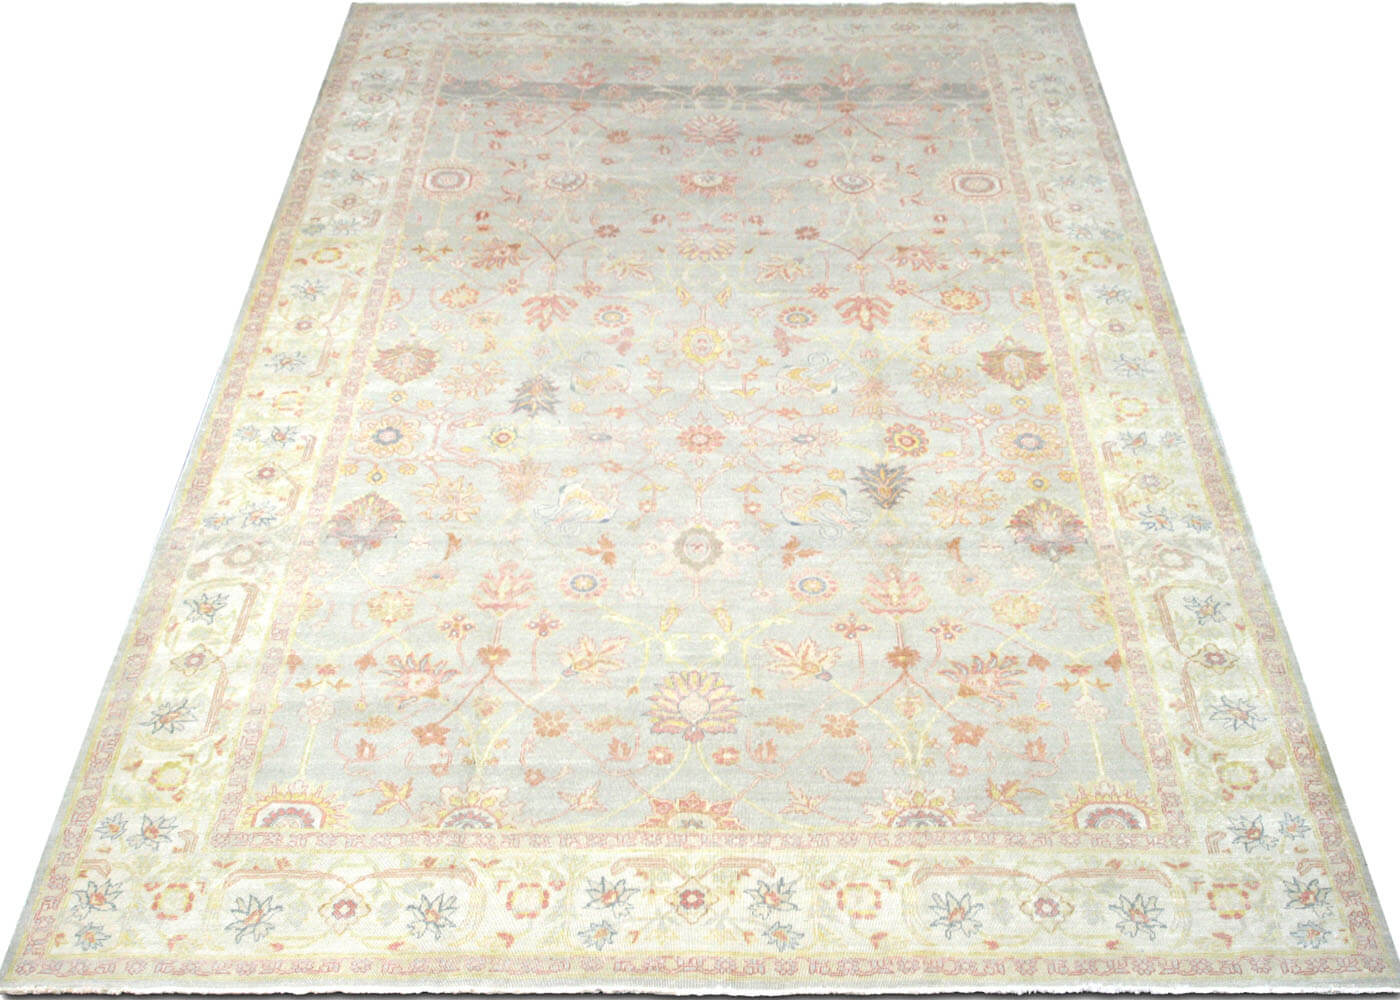 "Recently Woven Egyptian Tabriz Carpet - 10'1"" x 13'7"""